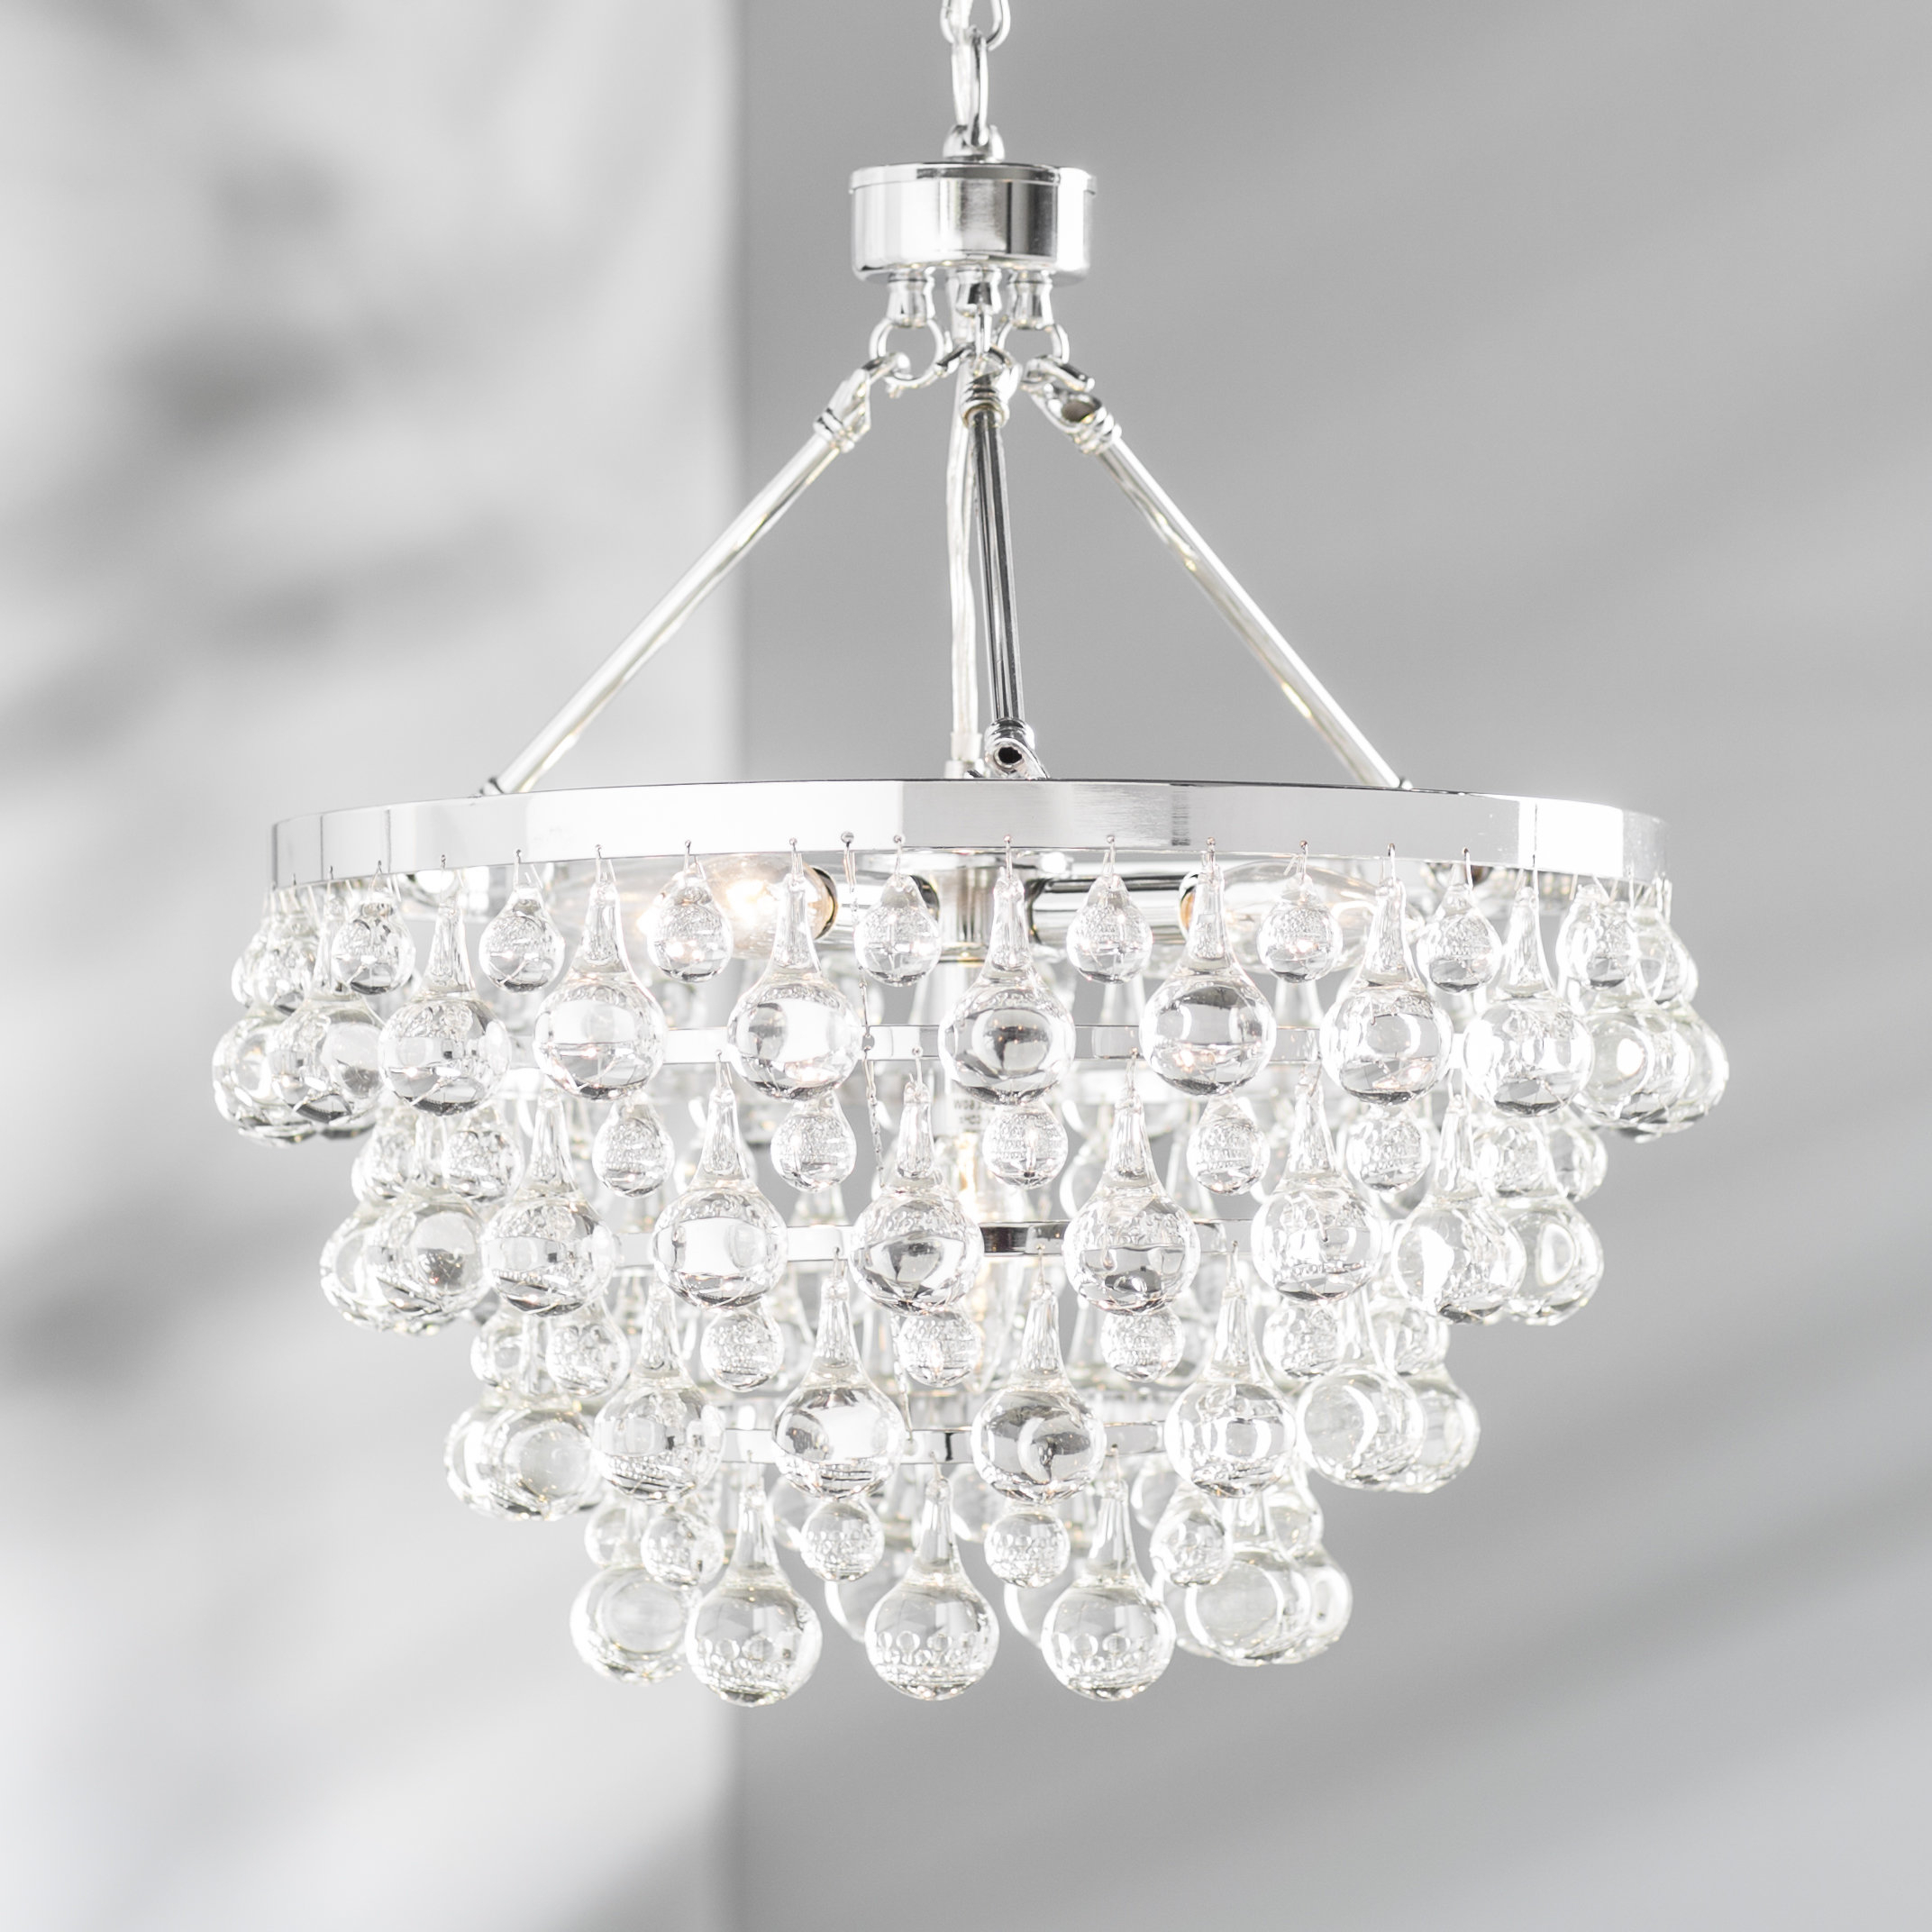 Ladonna 5 Light Novelty Chandeliers In Most Up To Date Willa Arlo Interiors Ahern 5 Light Crystal Chandelier (View 5 of 20)